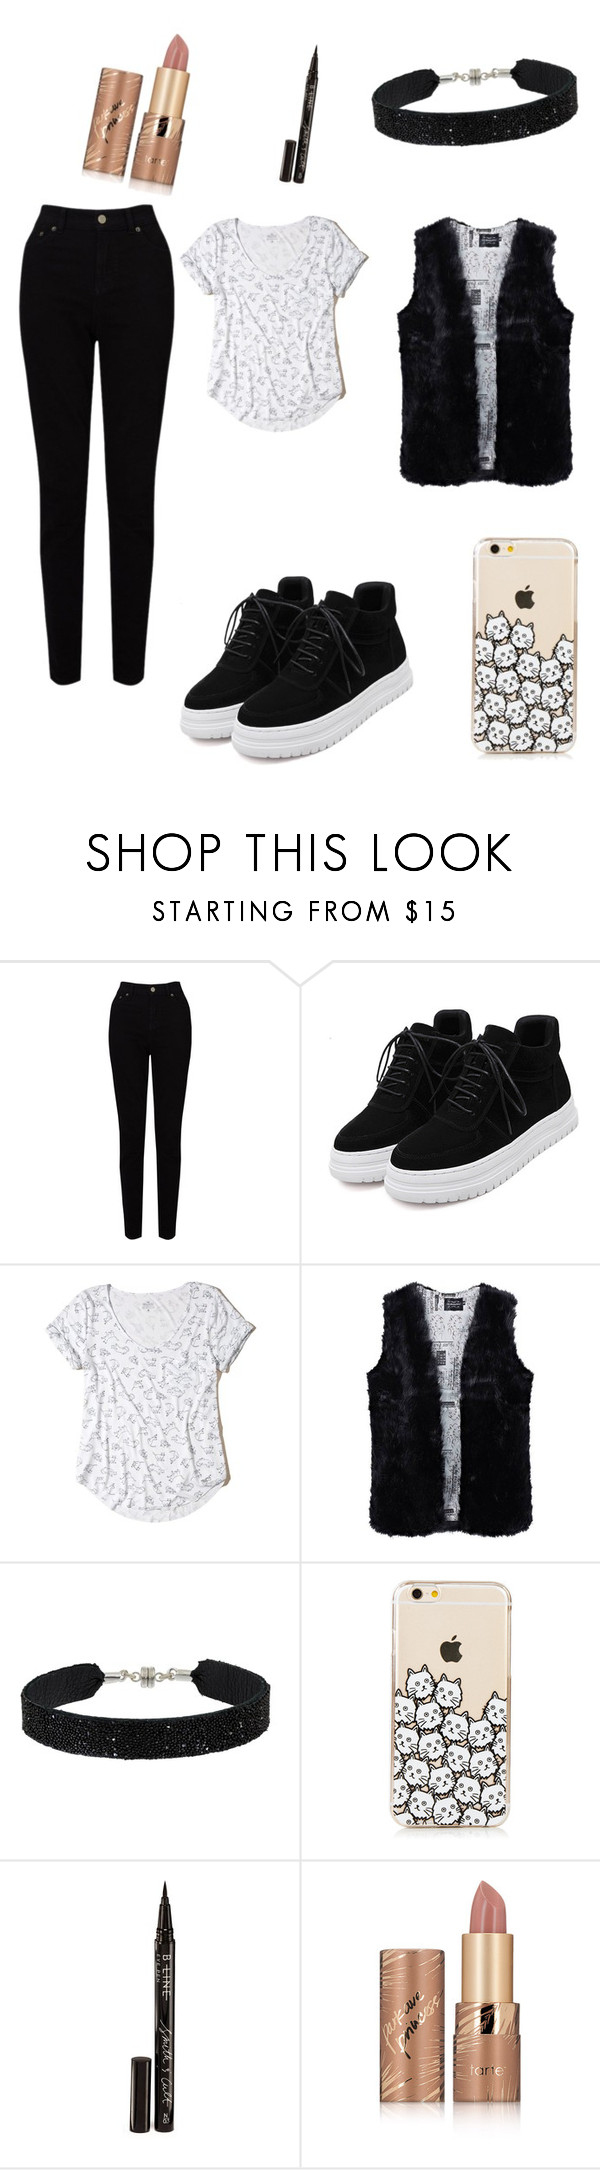 """""""на праздник"""" by alinageroeva ❤ liked on Polyvore featuring EAST, Hollister Co., She.Rise, Smith & Cult and tarte"""